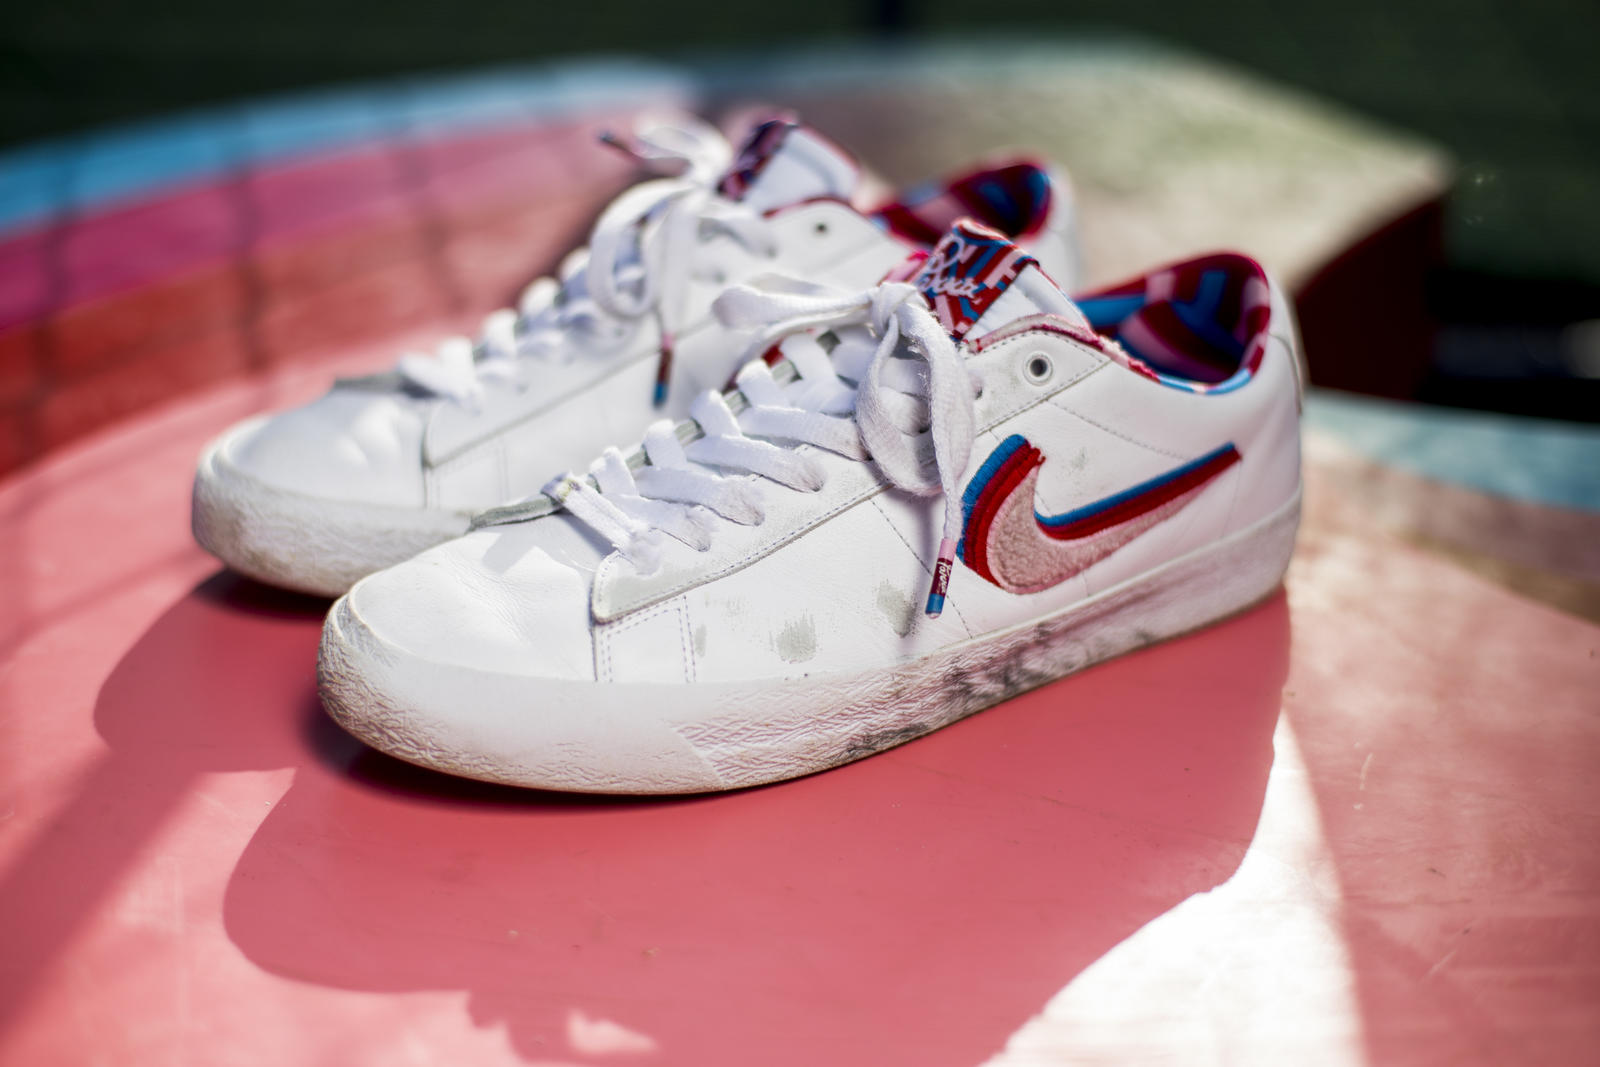 Nike SB x Parra Dunk and Blazer Official Images and Release Date ...